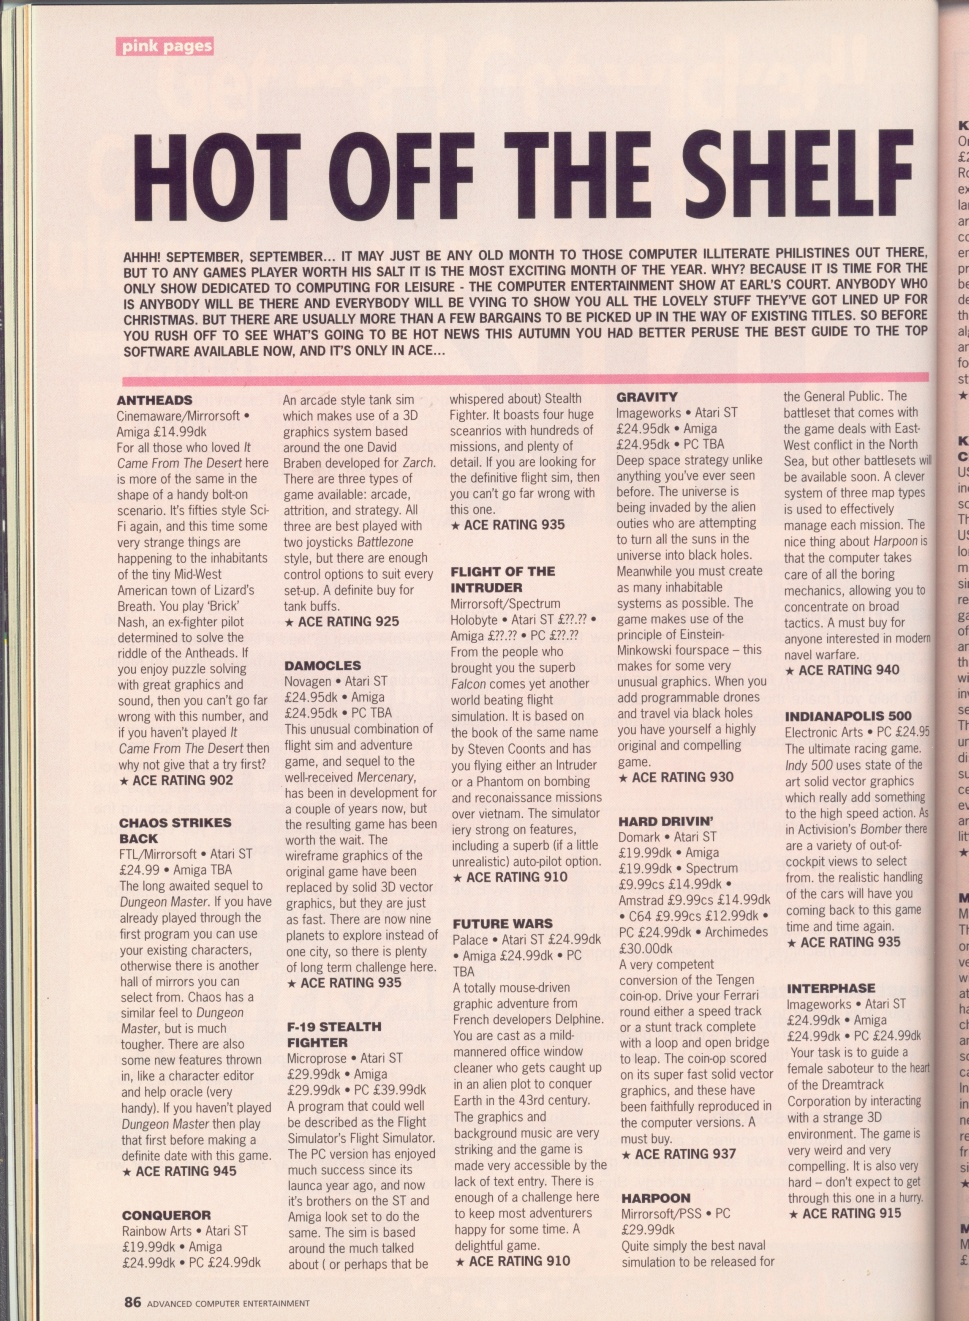 Chaos Strikes Back for Atari ST-Amiga Preview published in British magazine 'Advanced Computer Entertainment', Issue #36 September 1990, Page 86